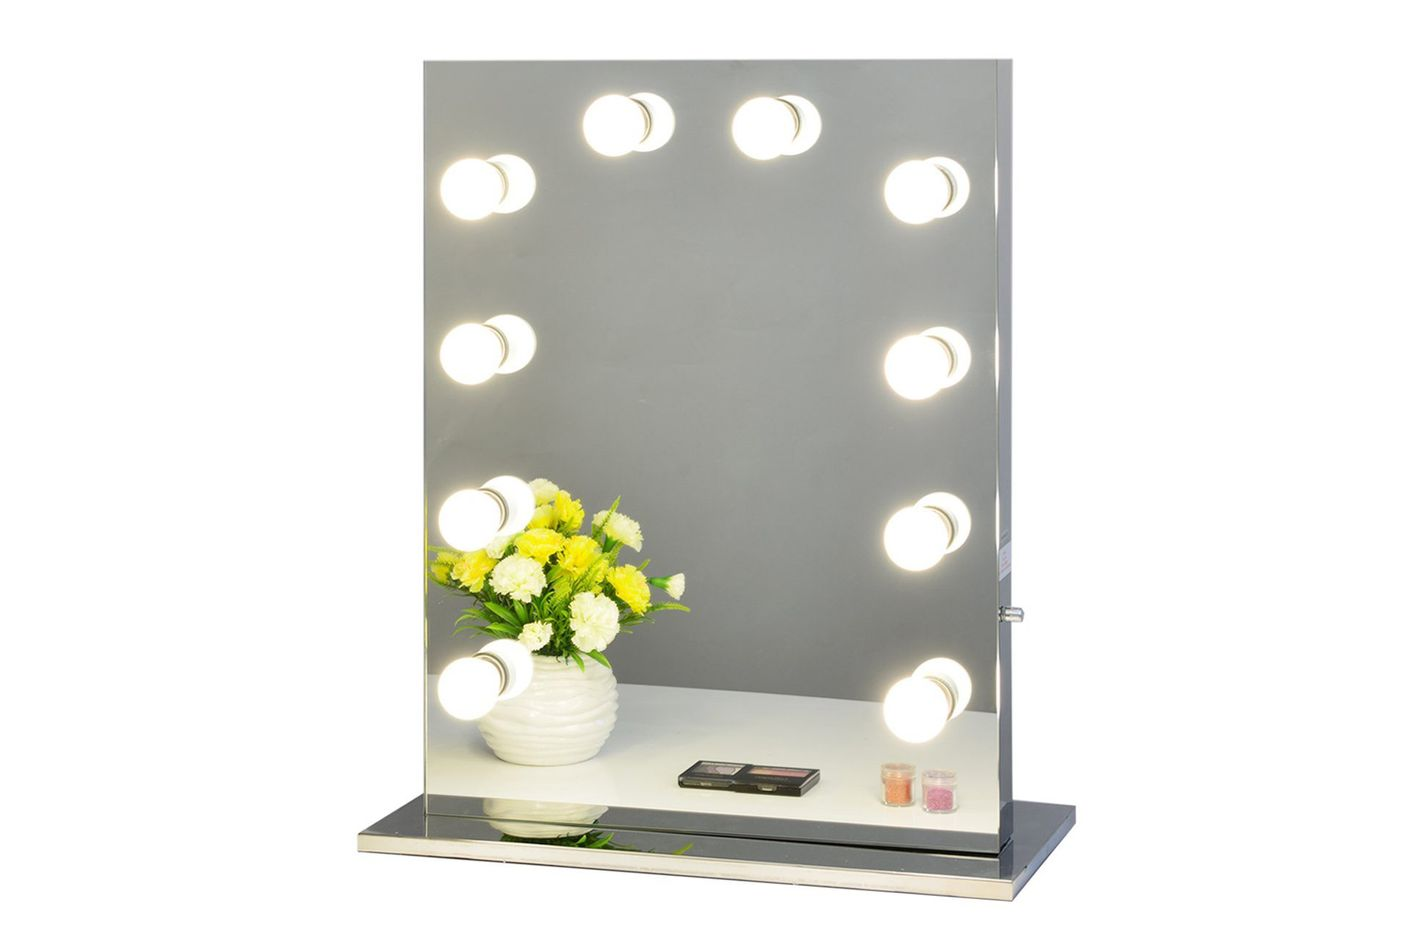 tabletops vanity hollywood stage beauty with makeup light bulbs frame lighting free mirror product led dimmer lighted aluminum store